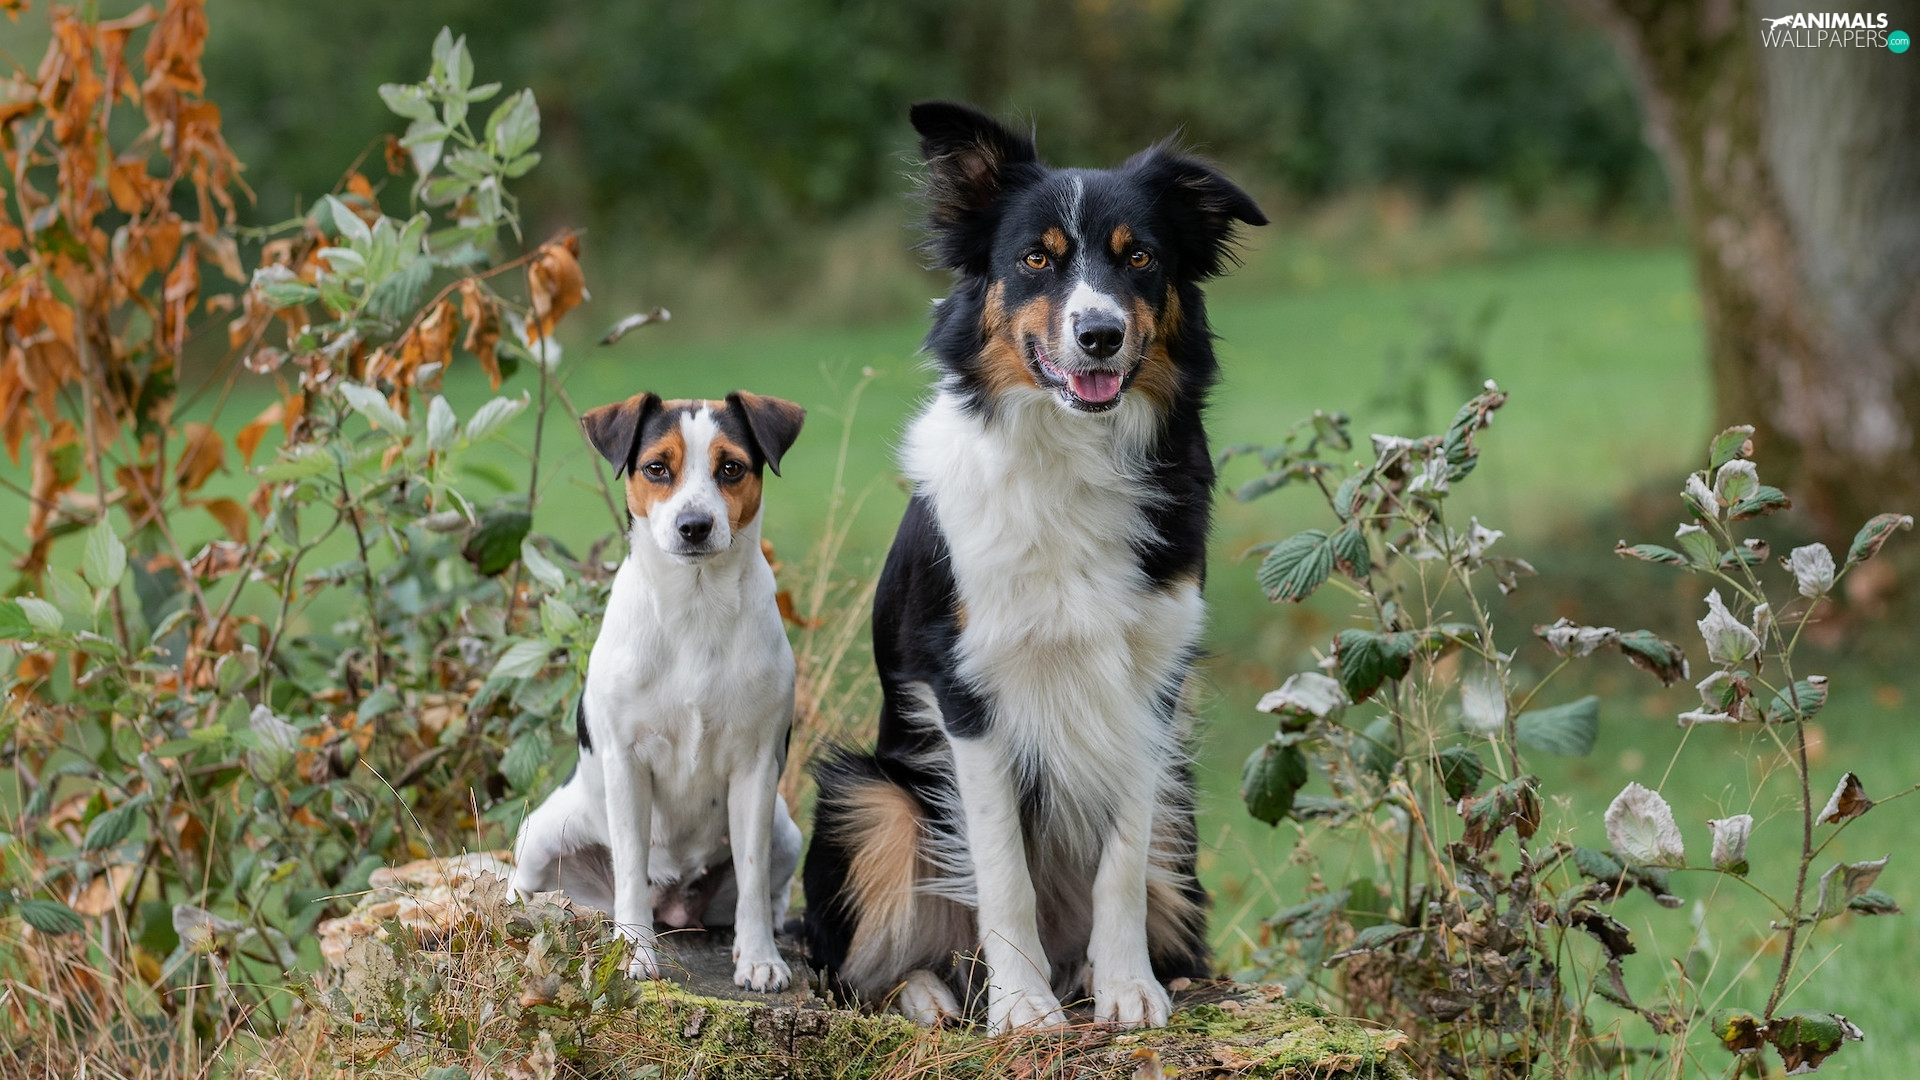 White-brown, Two cars, black and white, Border Collie, dog, Dogs